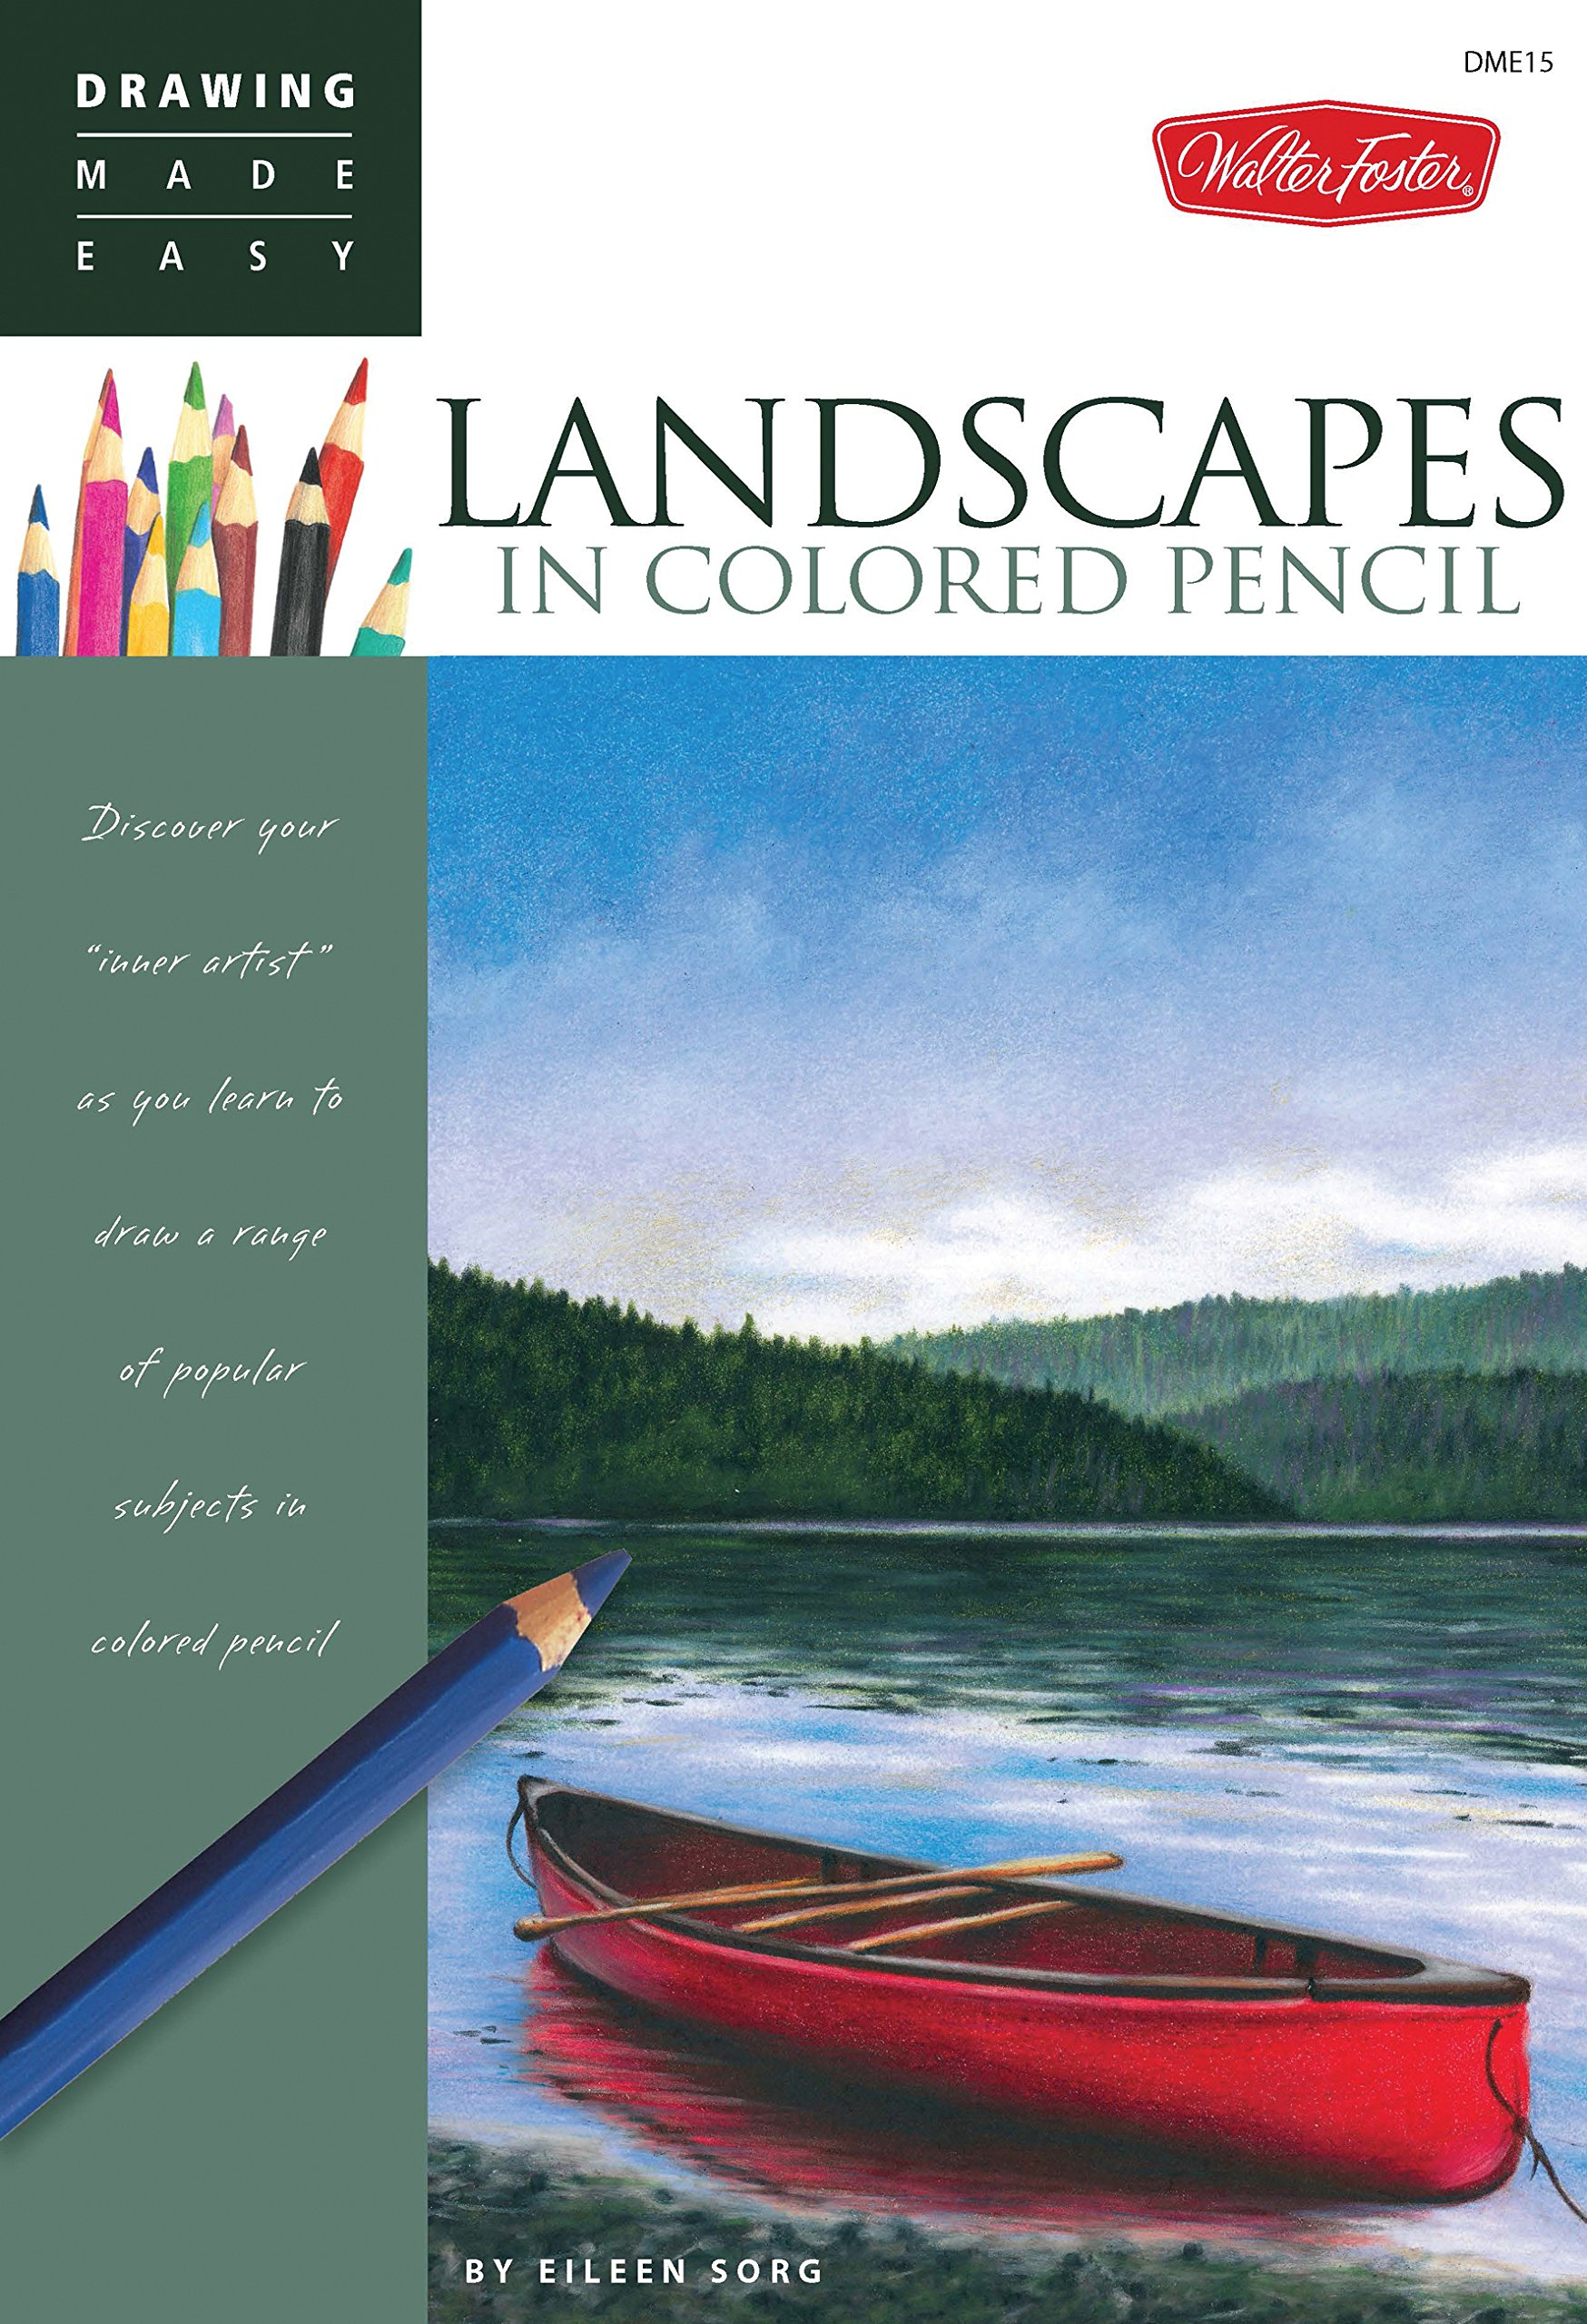 Landscapes in Colored Pencil (Drawing Made Easy): Amazon co